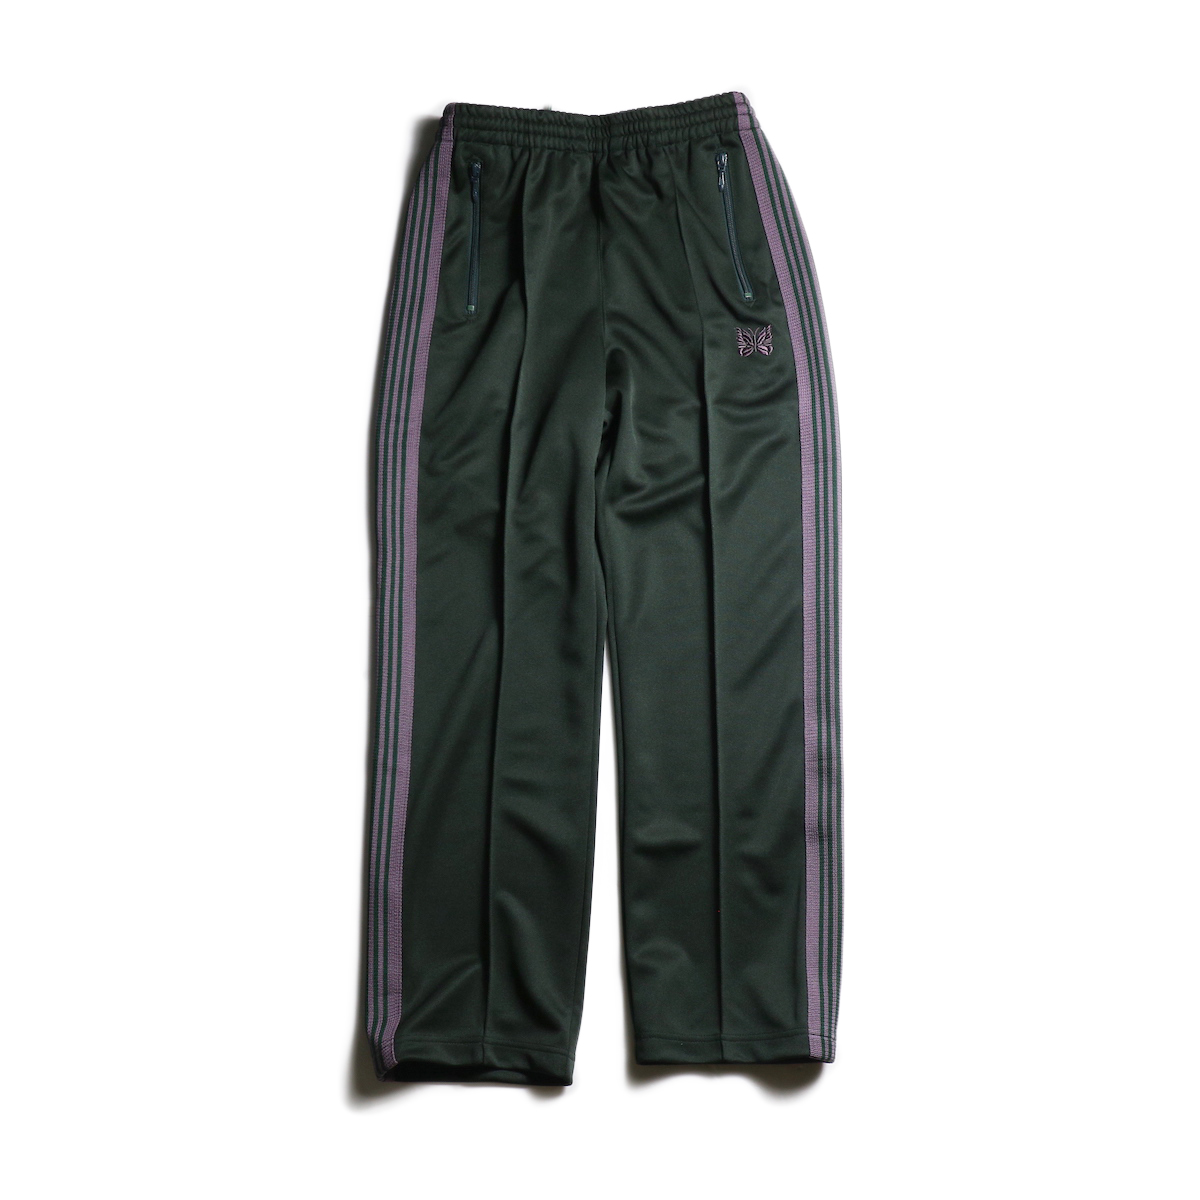 Needles / TRACK PANT - POLY SMOOTH (Green)